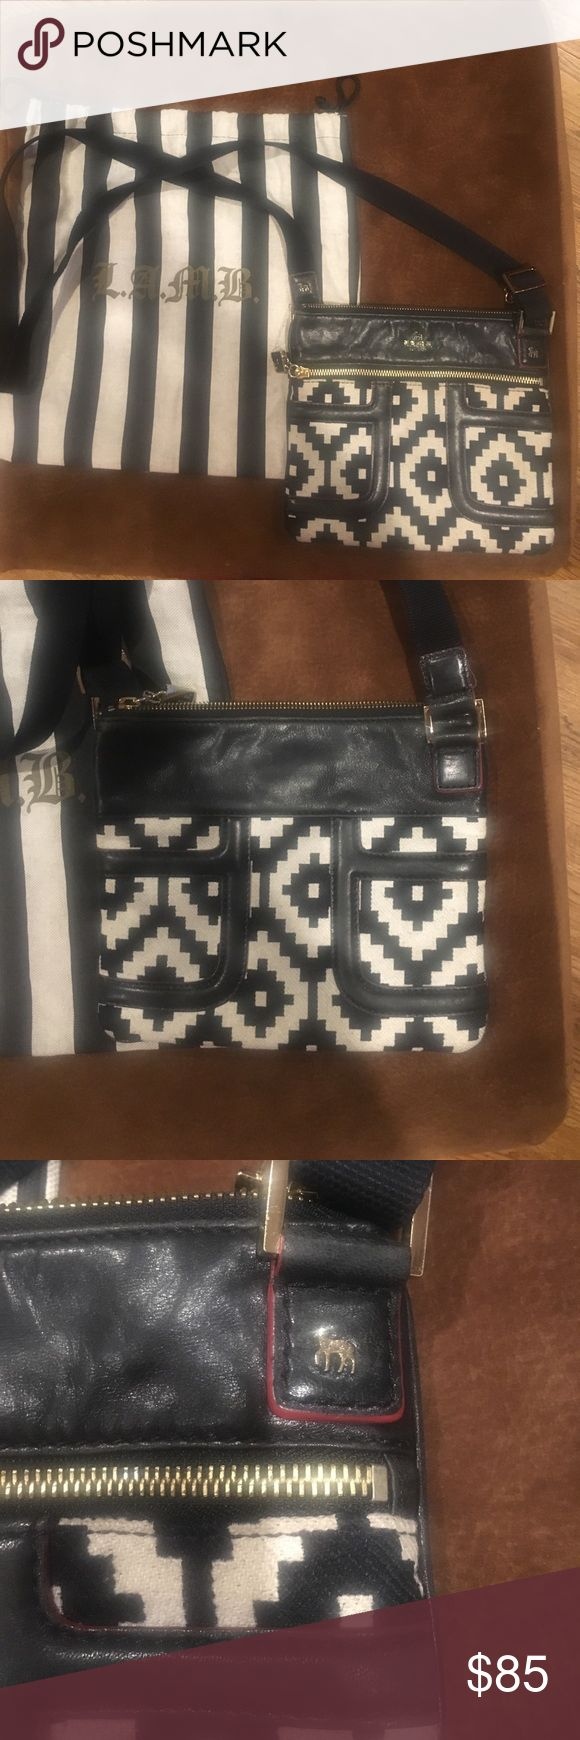 Lamb black and white crossbody bag Beautiful Lamb (by GwenStefani) crossbody messenger bag with leather detail. Preowned in good condition. lamb Bags Crossbody Bags